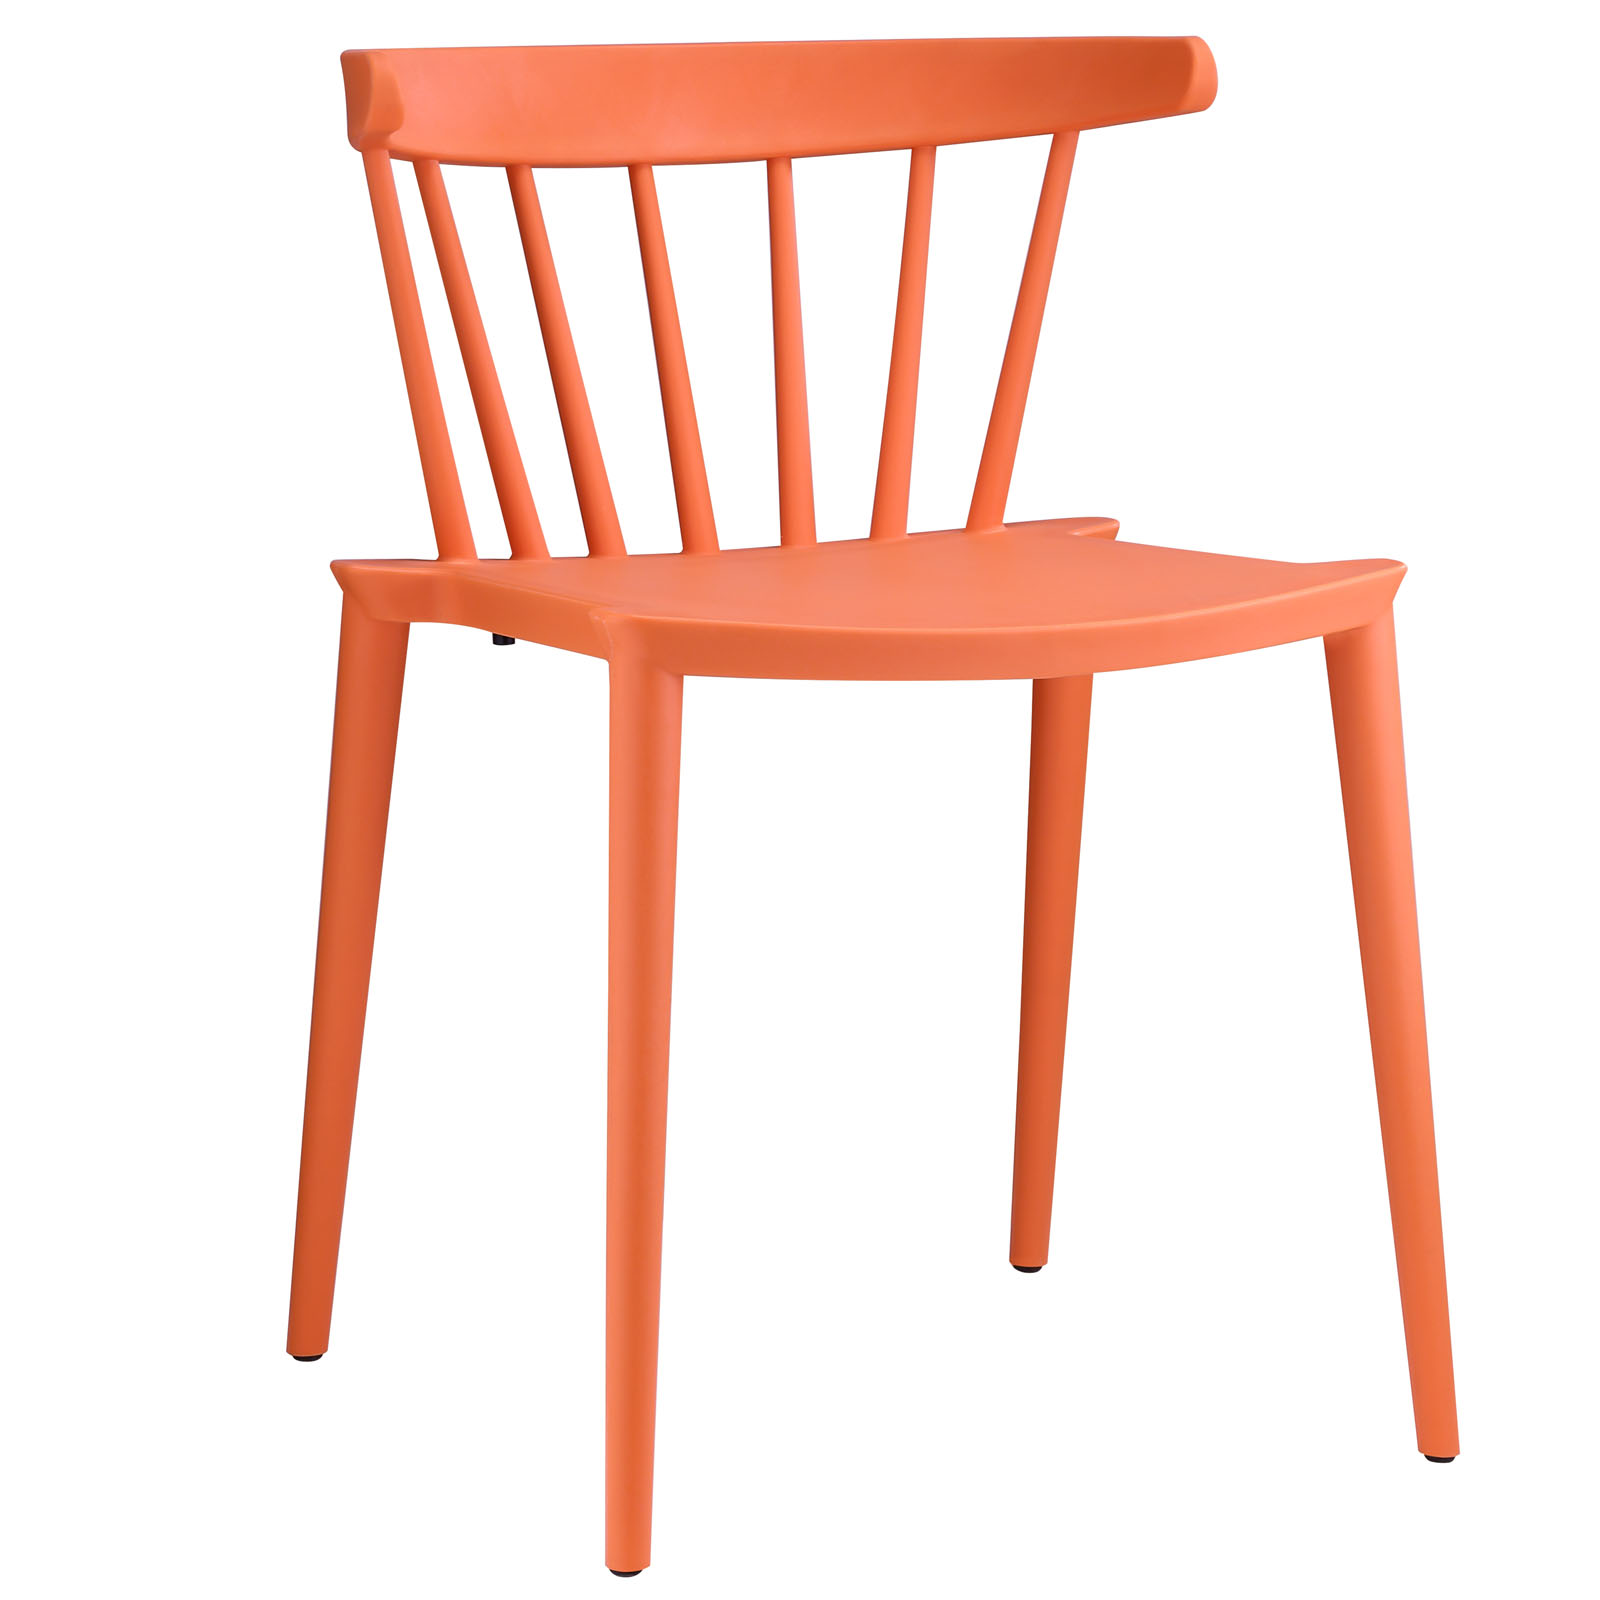 Modern Contemporary Dining Side Chair, Orange Plastic